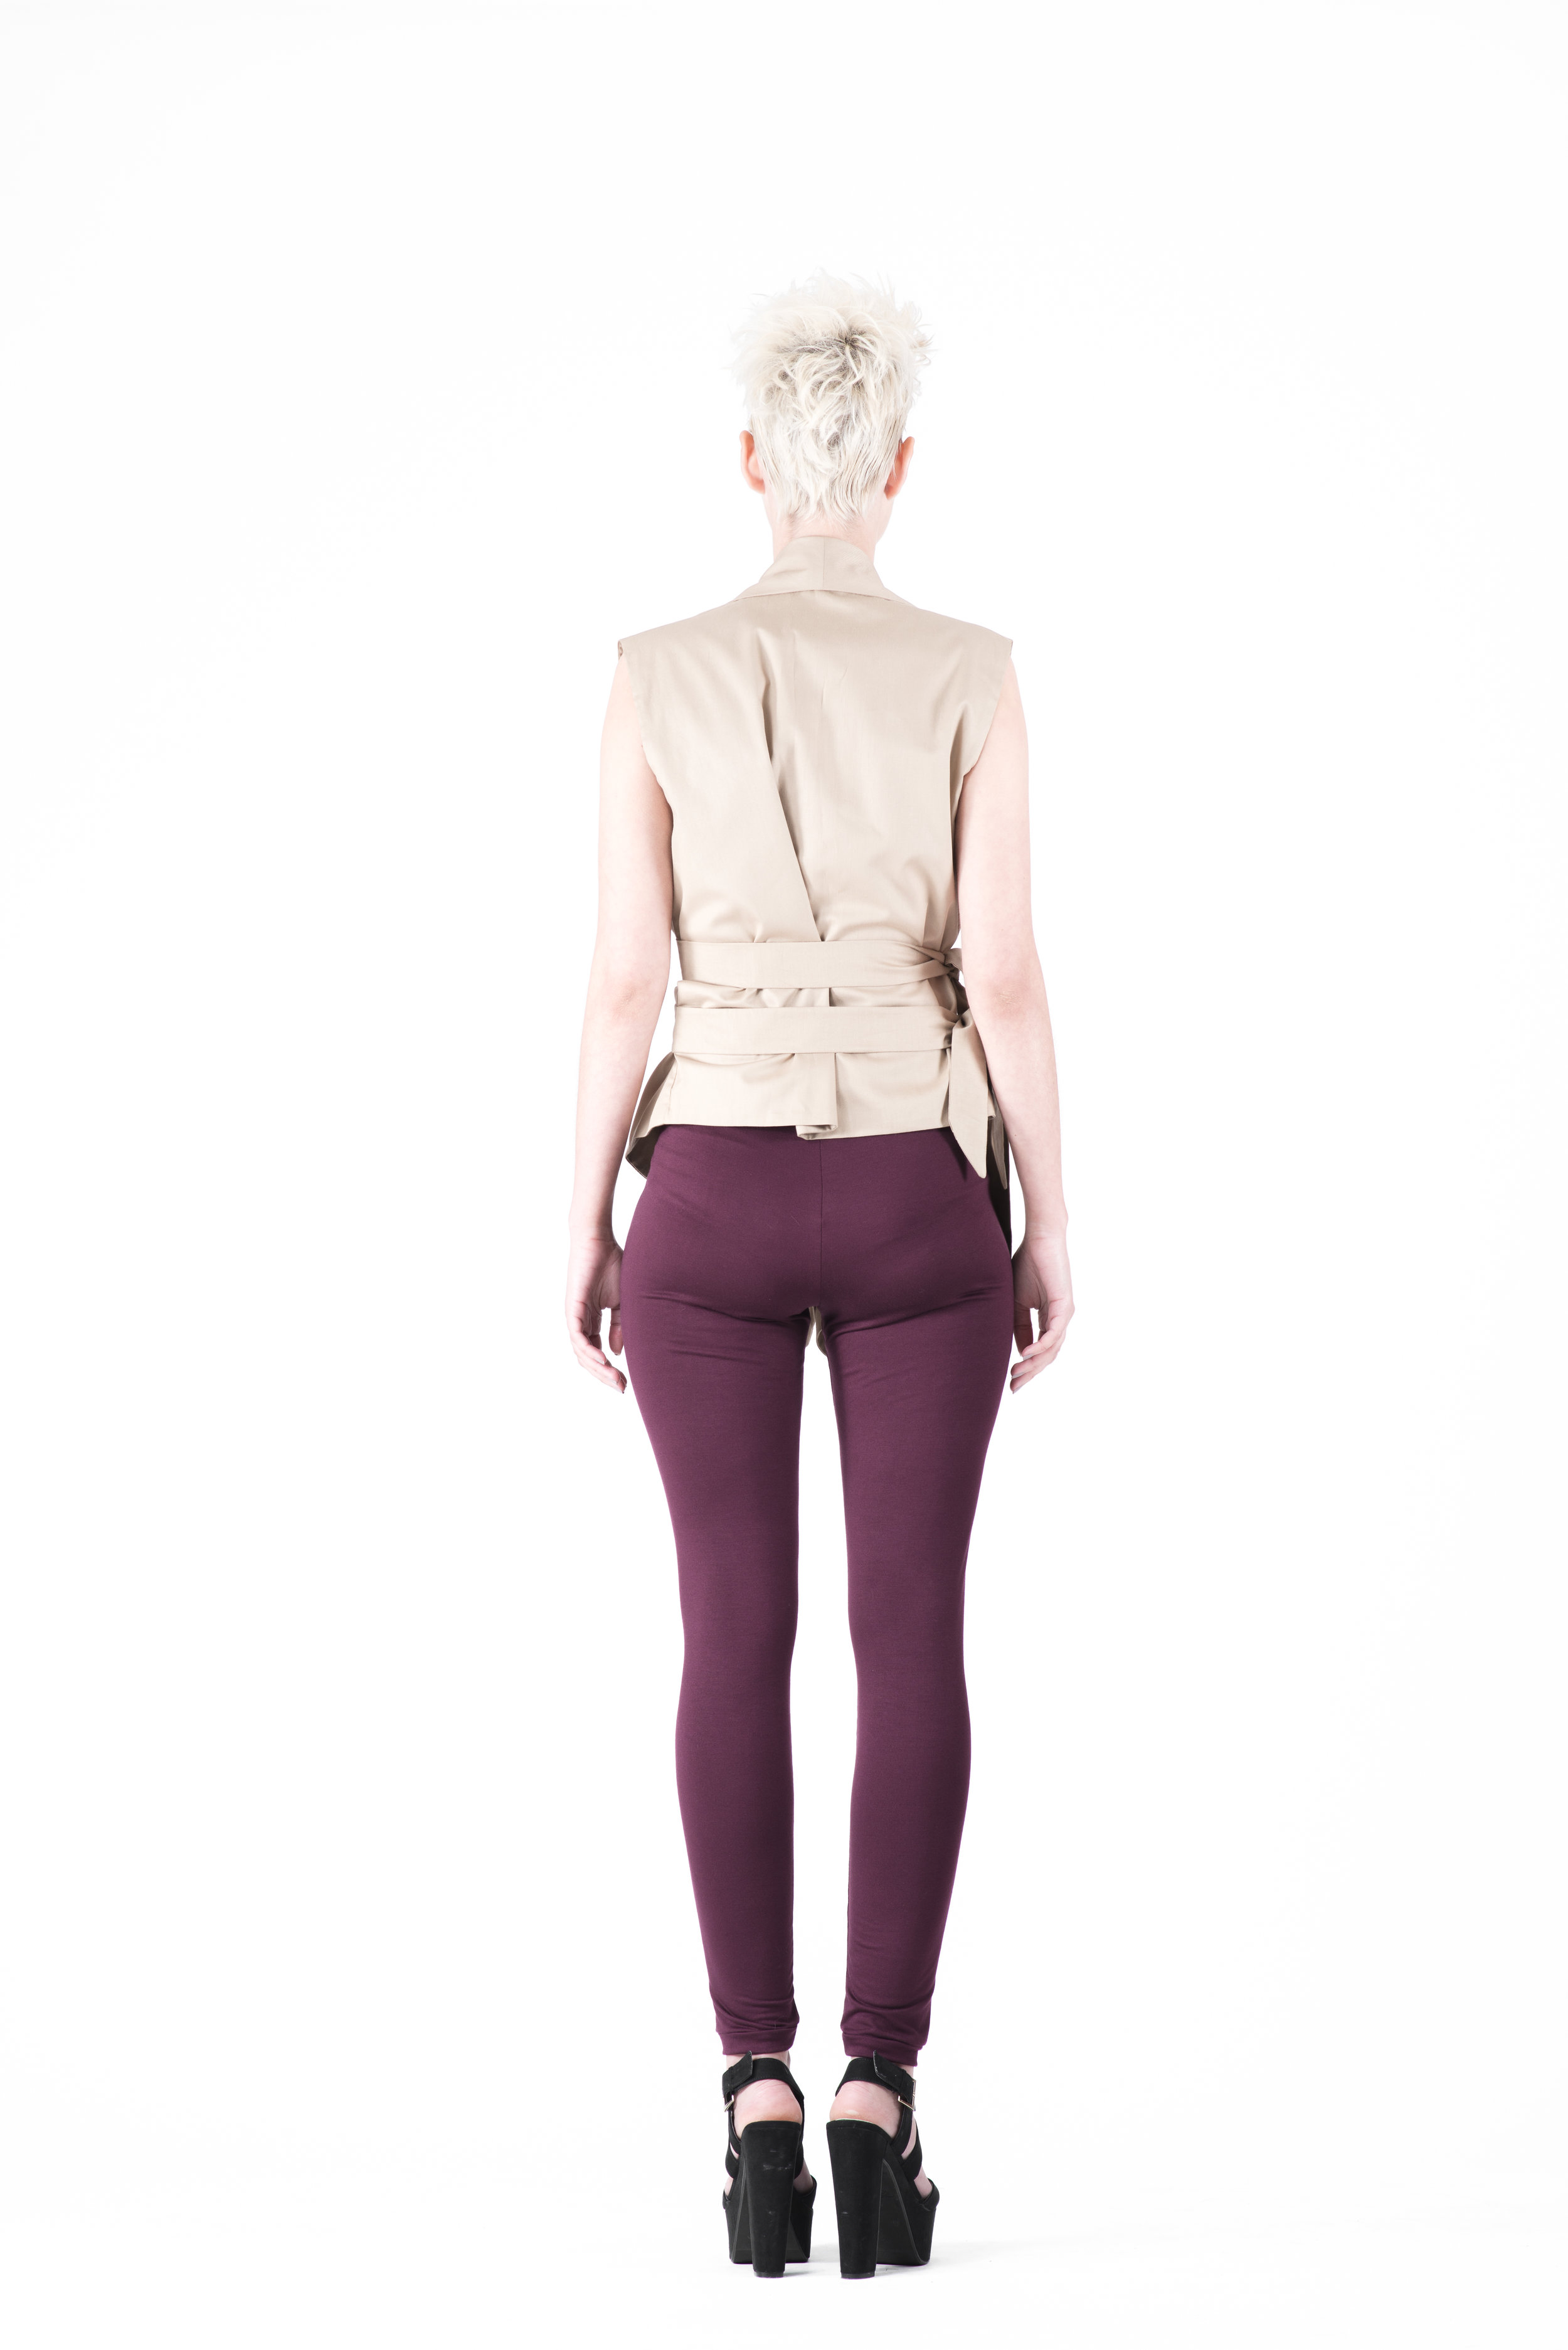 zaramia-ava-zaramiaava-leeds-fashion-designer-ethical-sustainable-tailored-minimalist-mioka-beige-top-versatile-rei-plum-legginges-drape-cowl-styling-womenswear-models-photoshoot-62